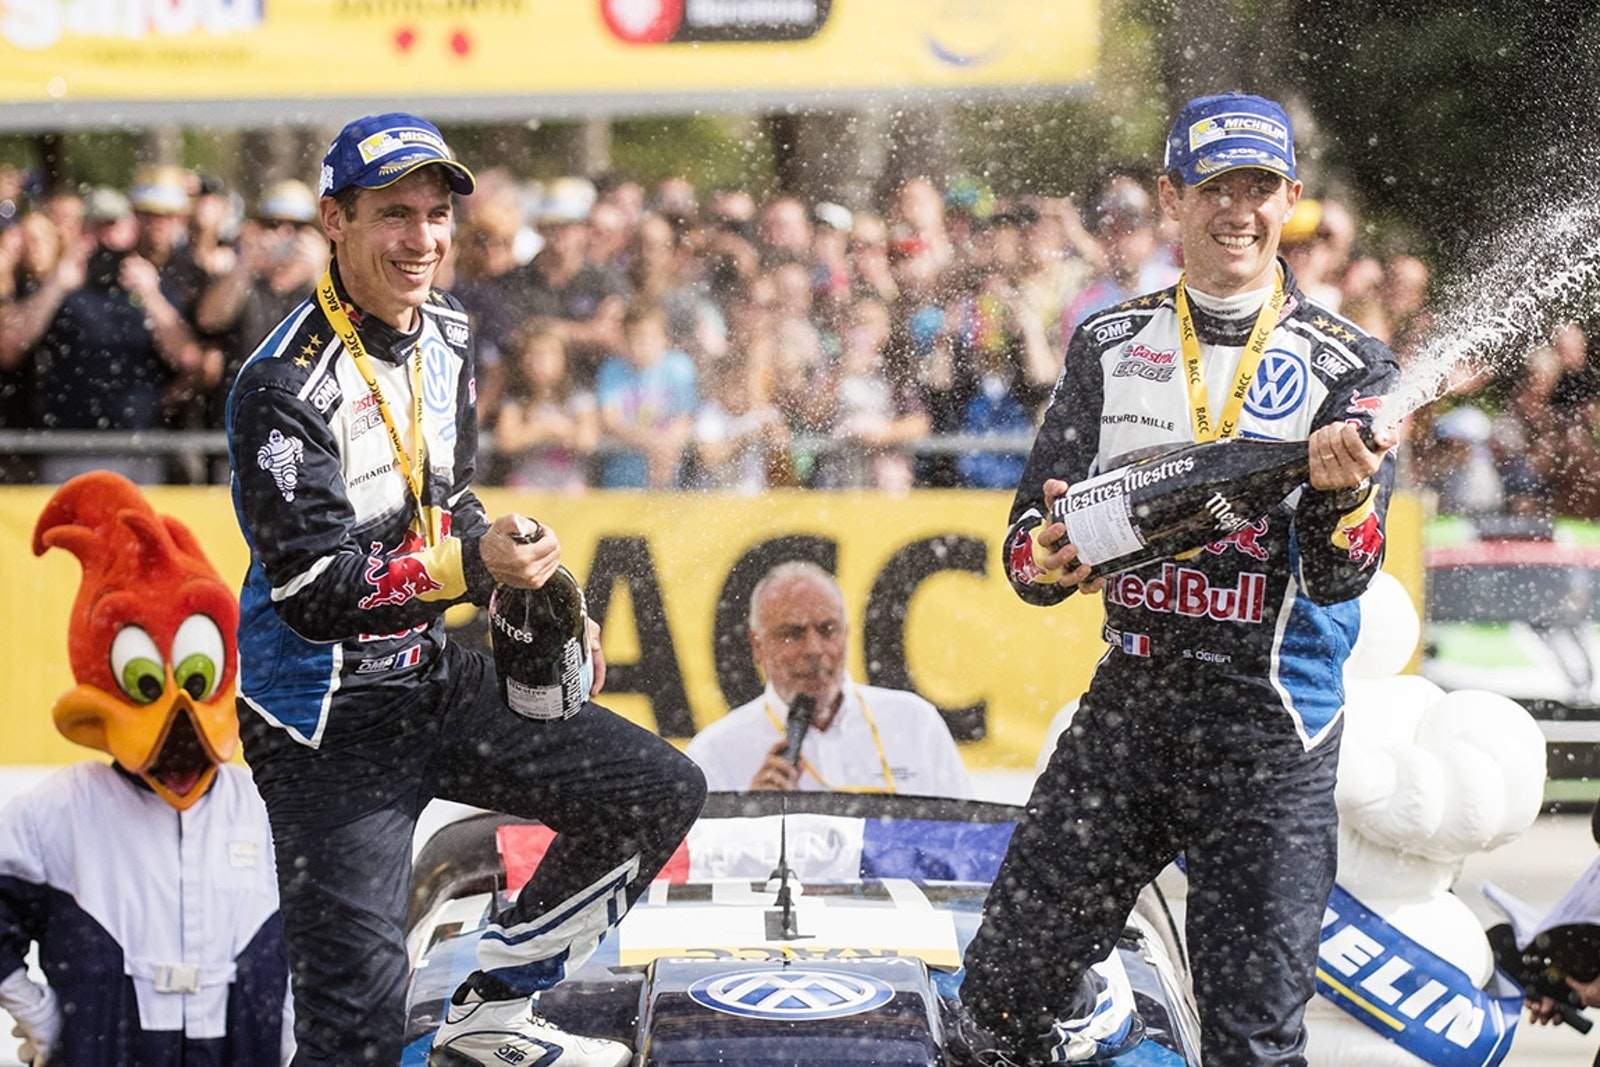 Sebastien Ogier (FRA), Julien Ingrassia celebrate the podium during FIA World Rally Championship 2016 Spain in Salou , Spain  on 16 October 2016 // Jaanus Ree/Red Bull Content Pool // P-20161016-00845 // Usage for editorial use only // Please go to www.redbullcontentpool.com for further information. //